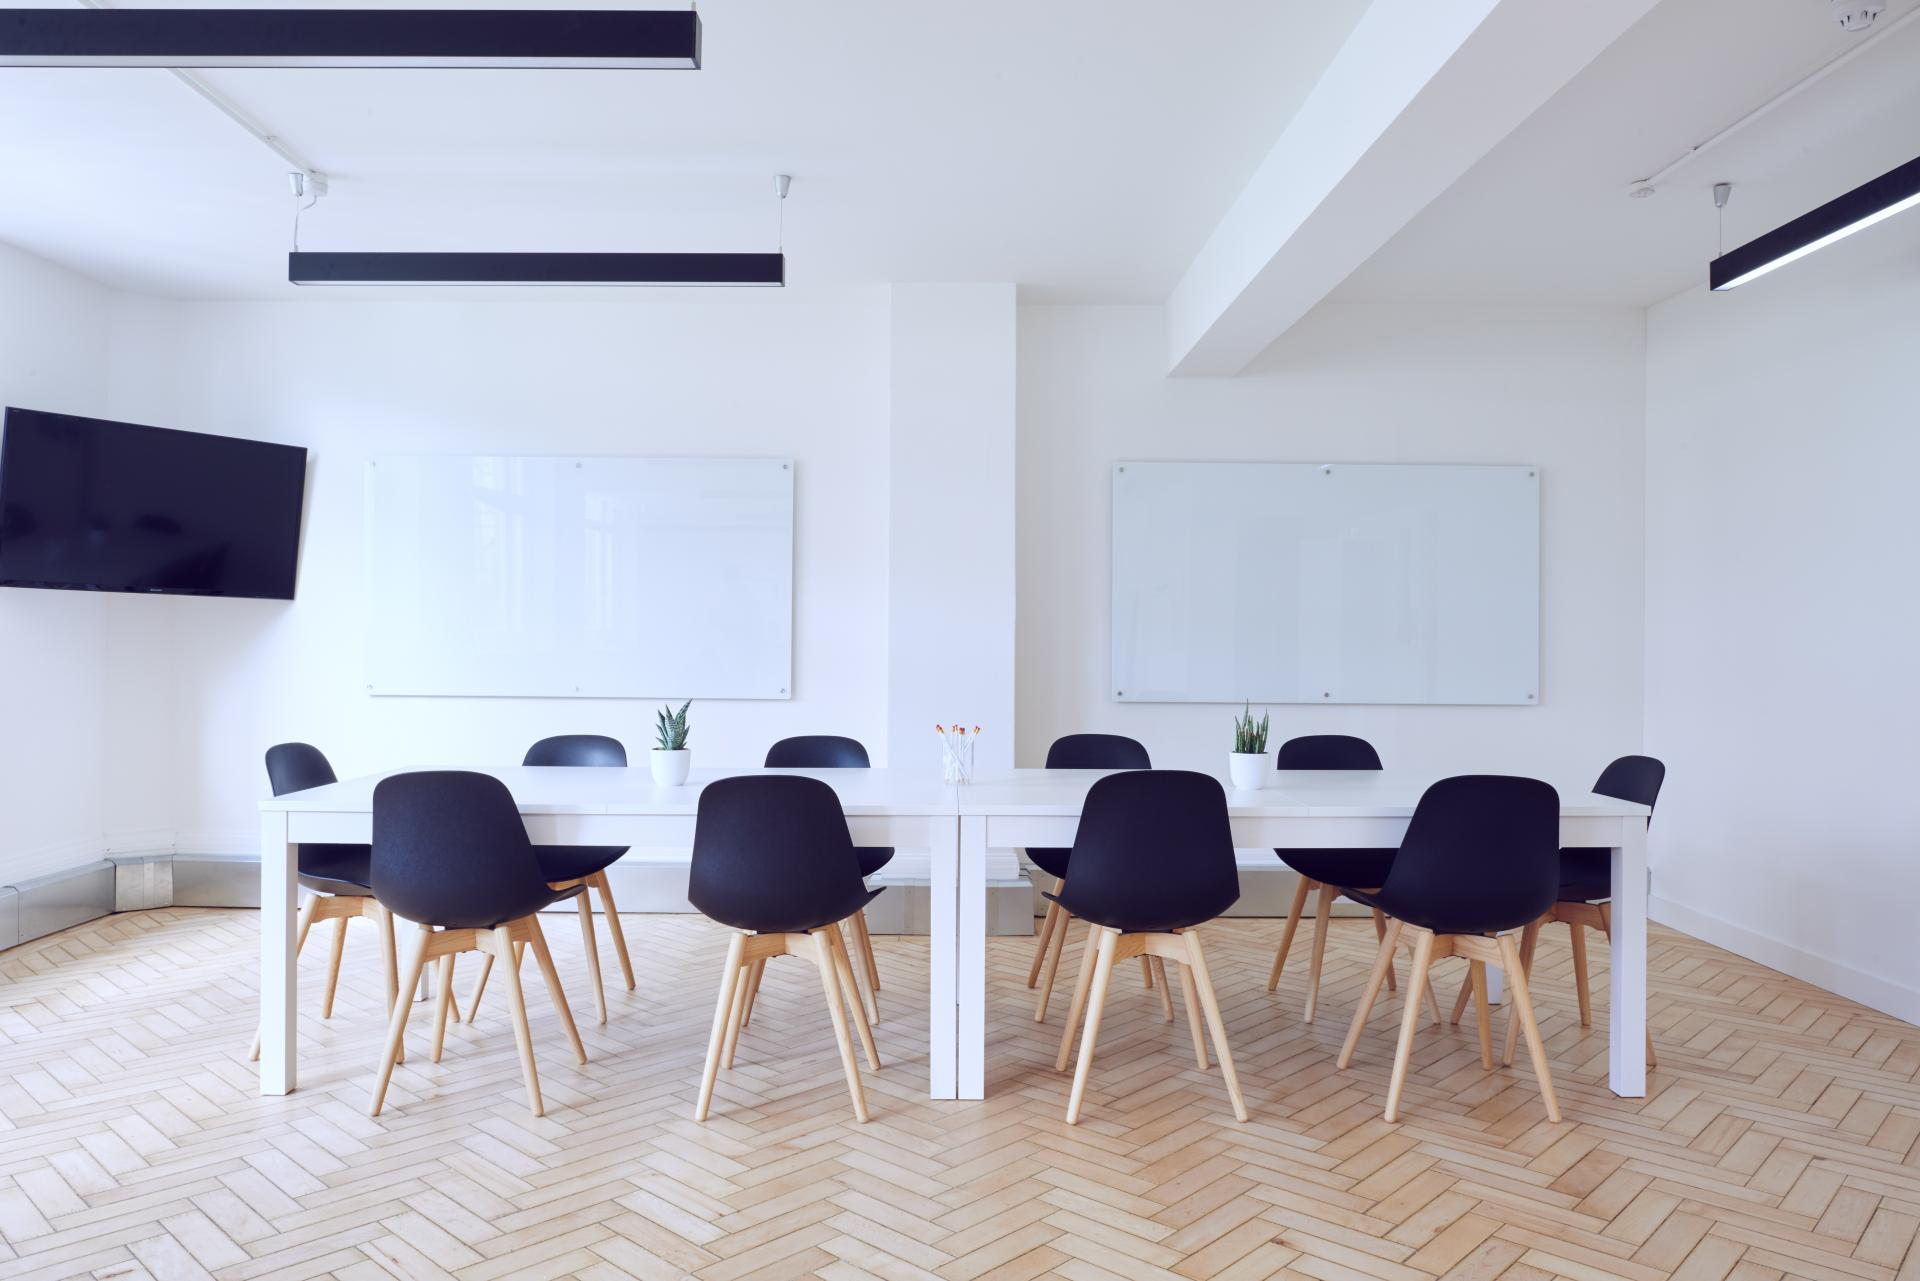 3 Ways Office Design Affects Work Productivity